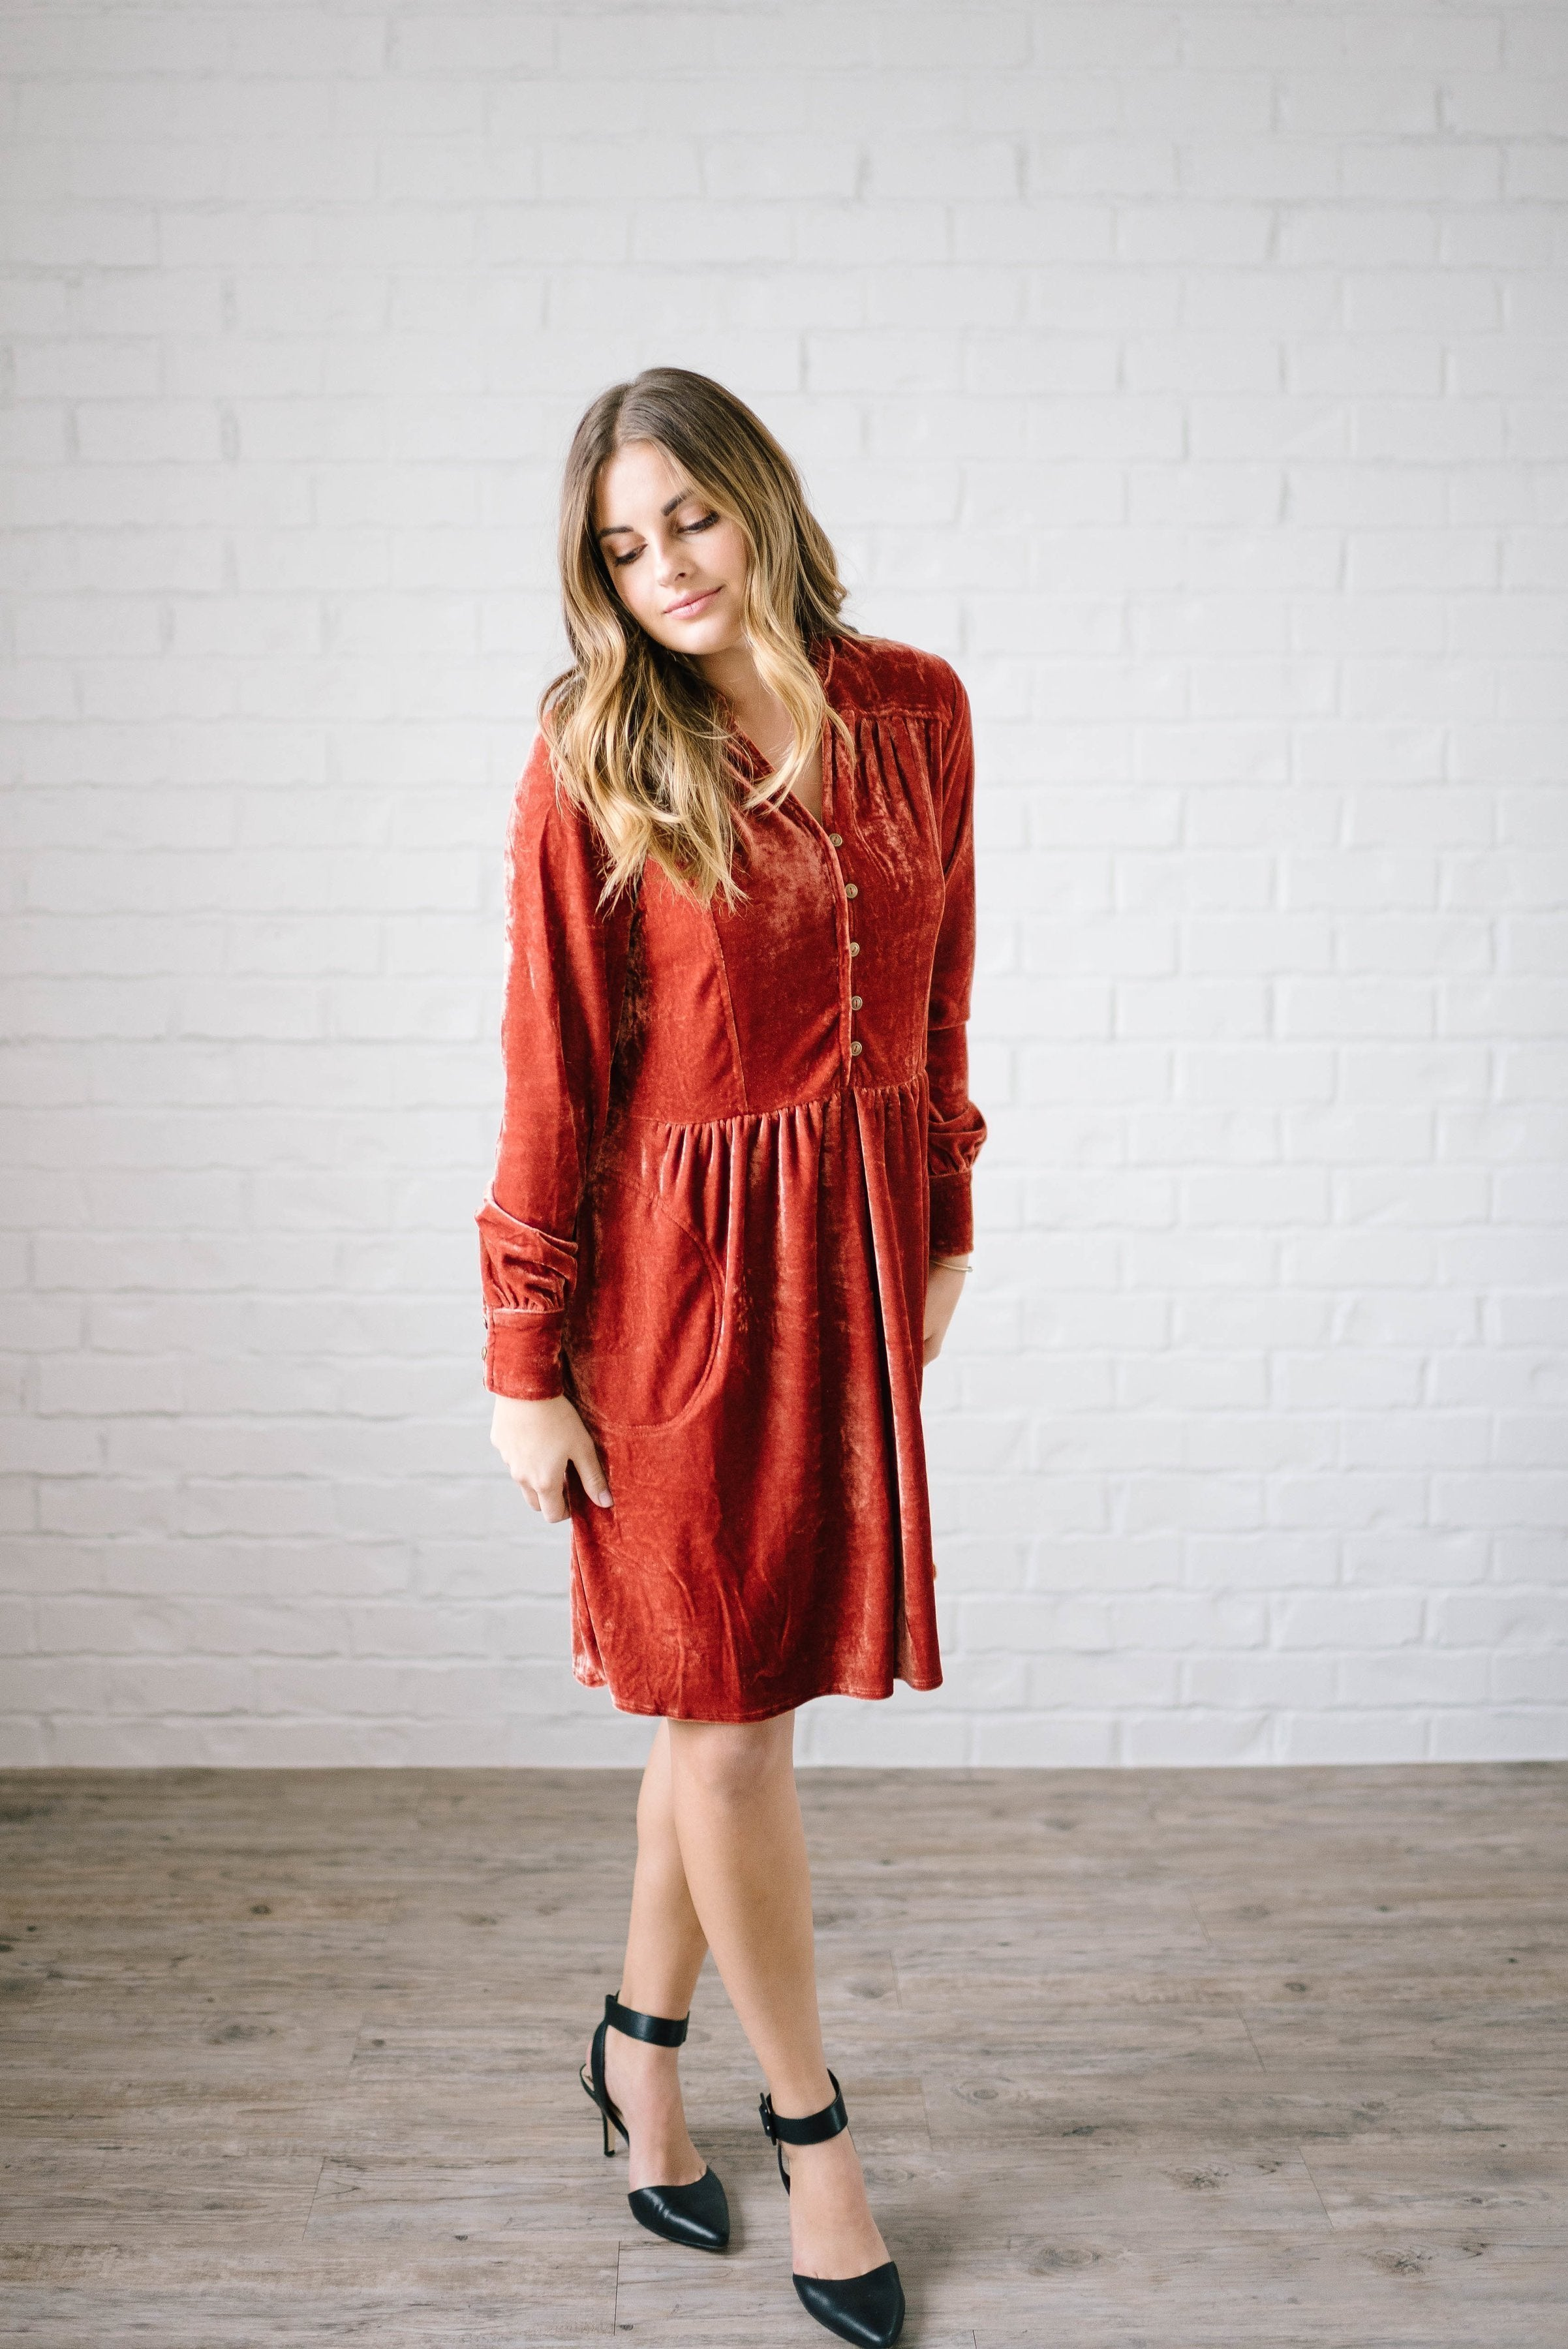 Crushing on You Dress in Rust